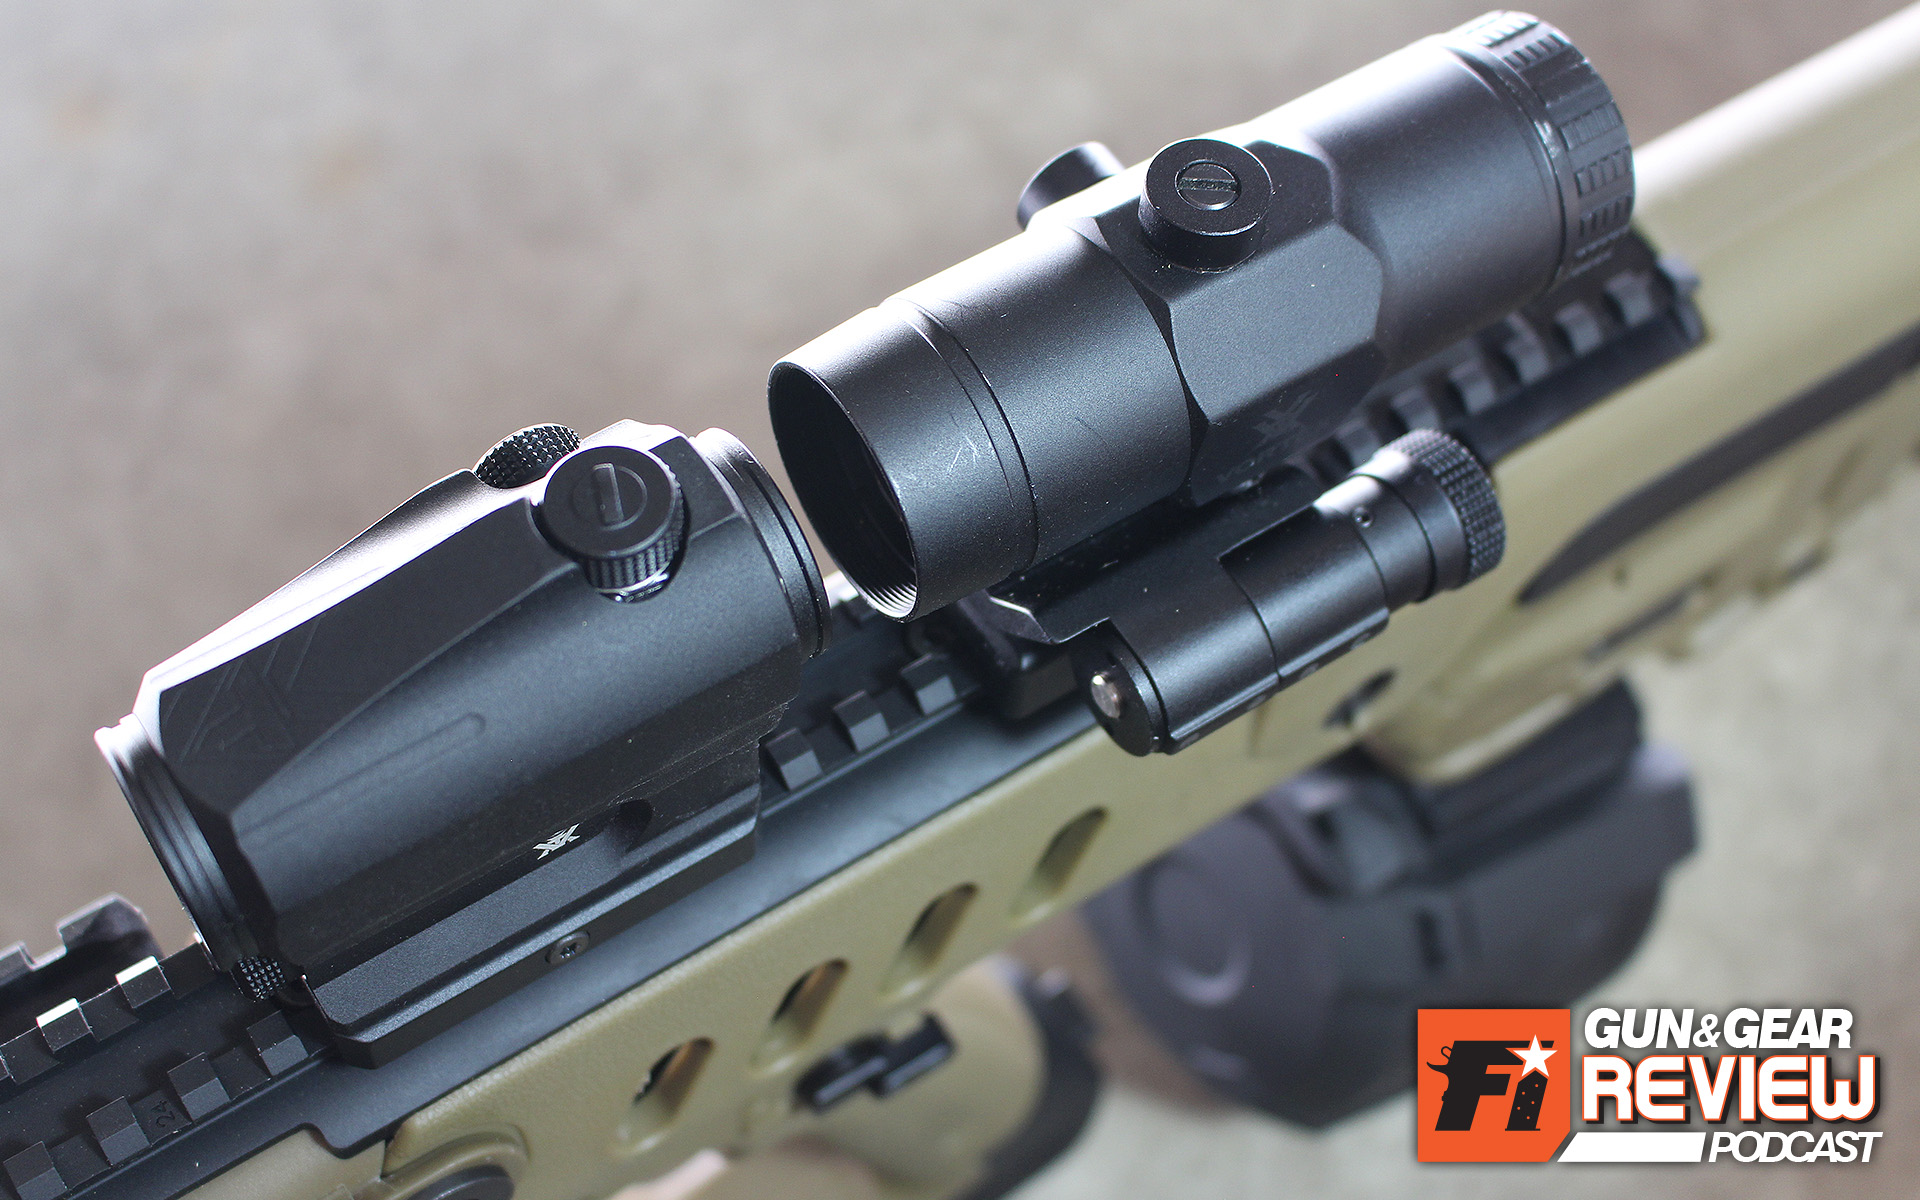 Red dots are ideal for carbines and other rifles, but having a boost of magnification is super beneficial and worth the extra ounces.